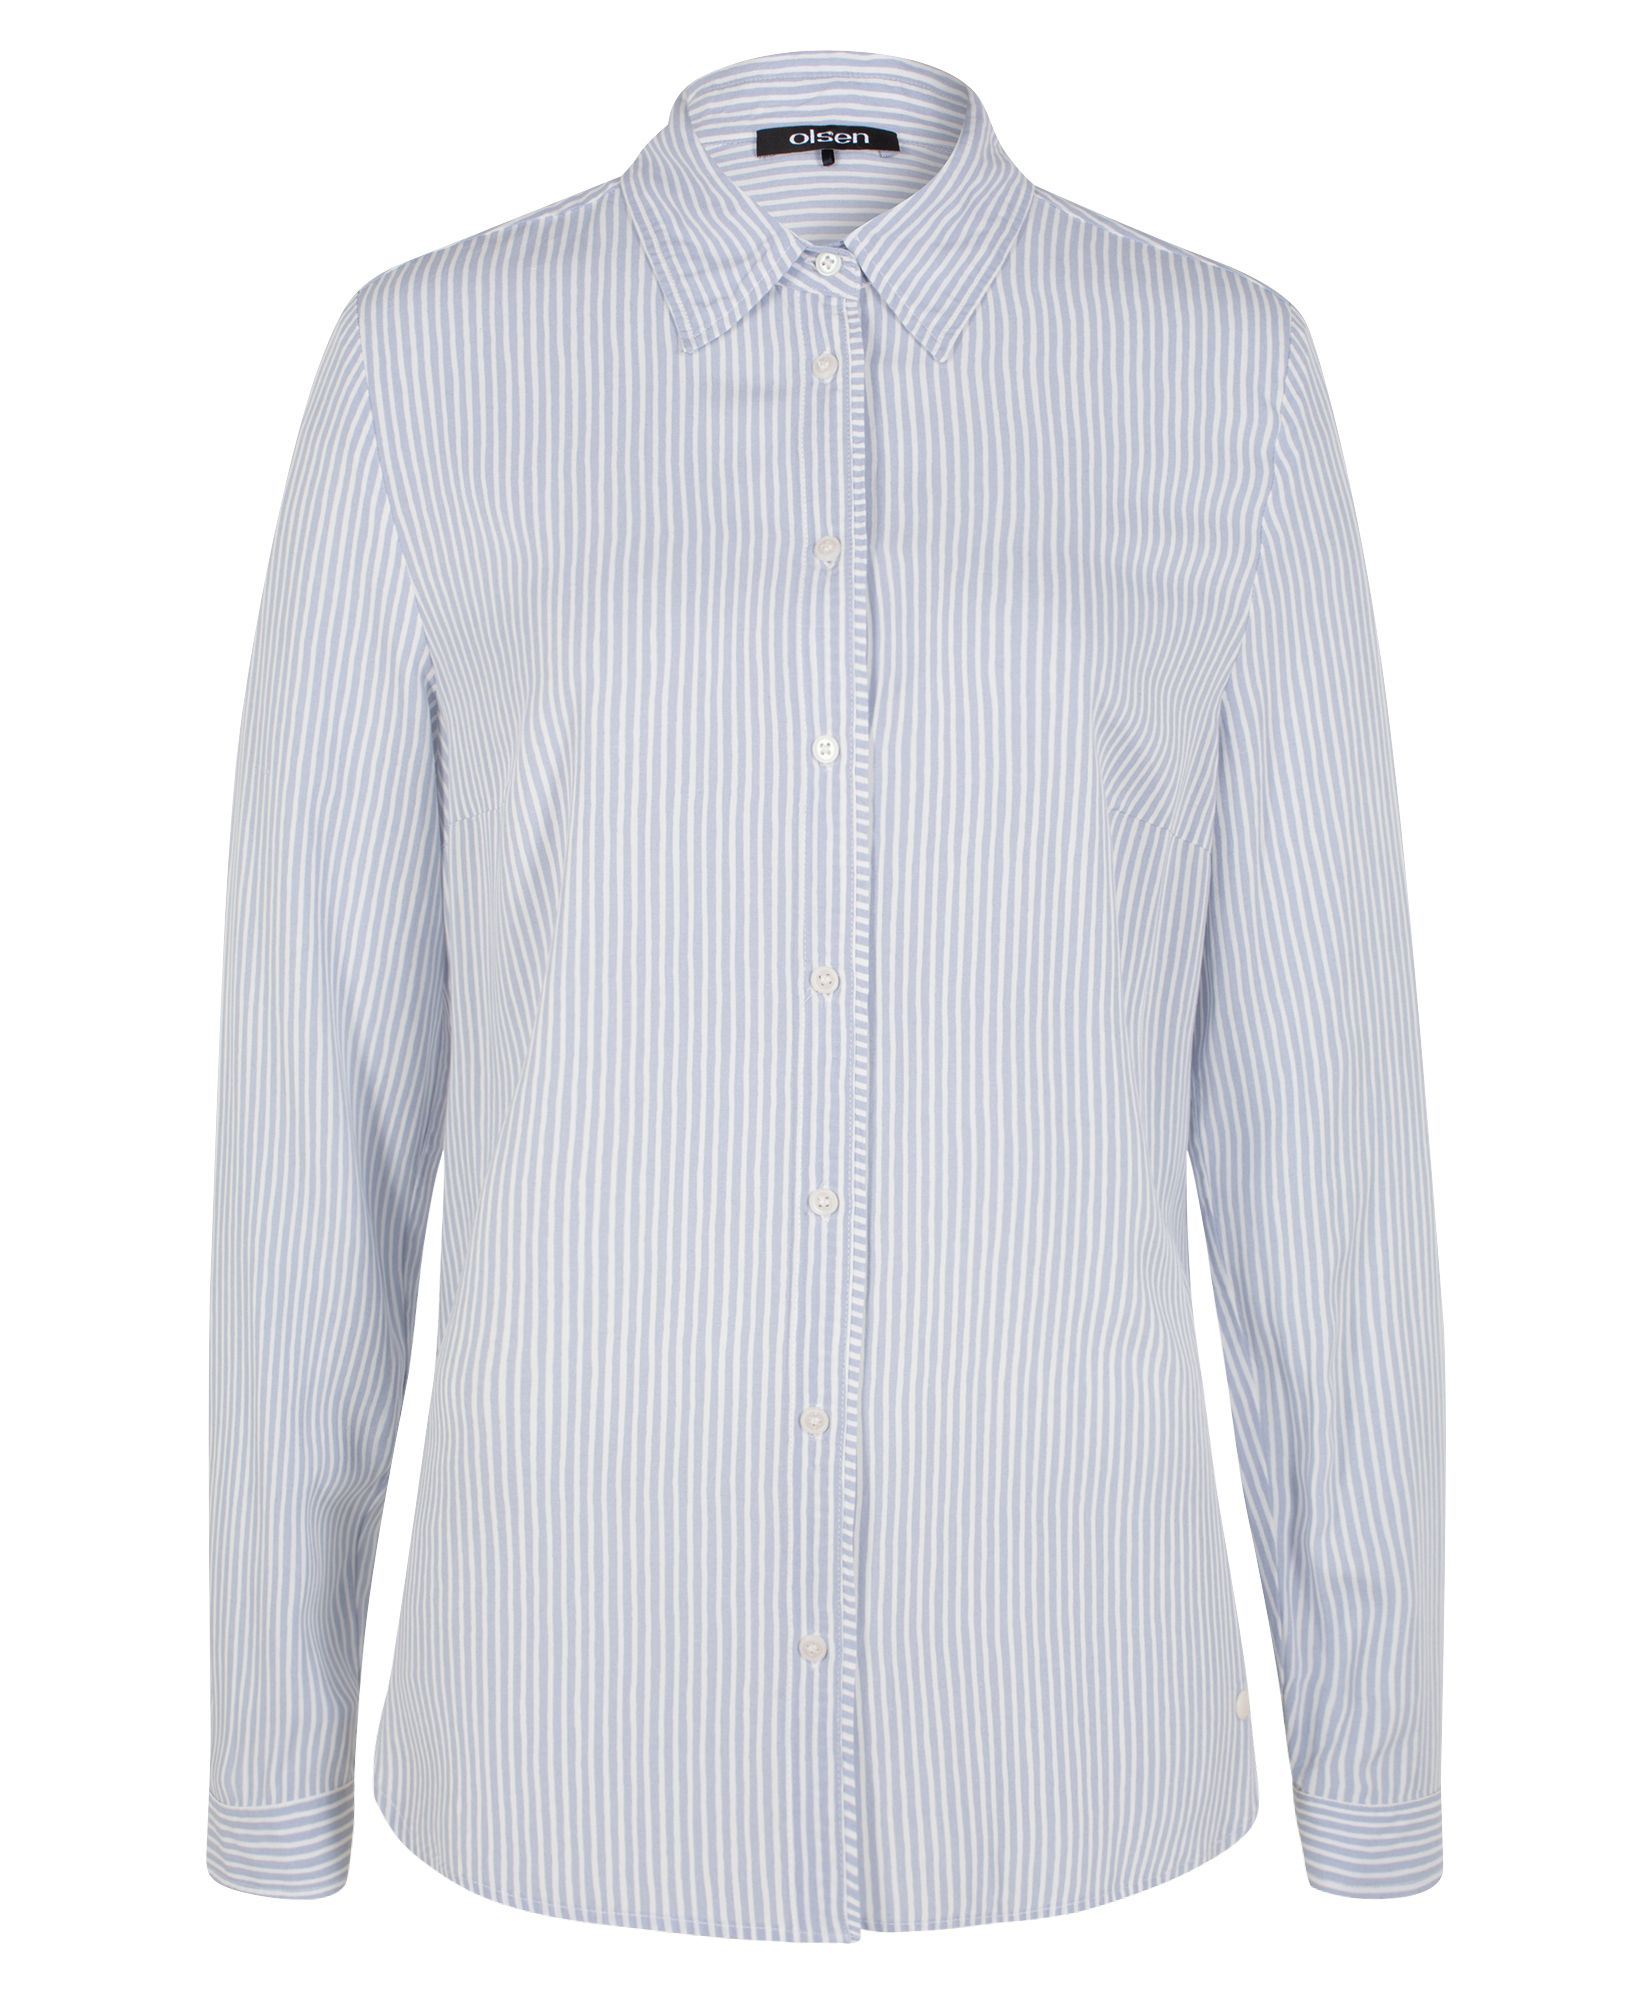 Olsen Stripe shirt, Blue